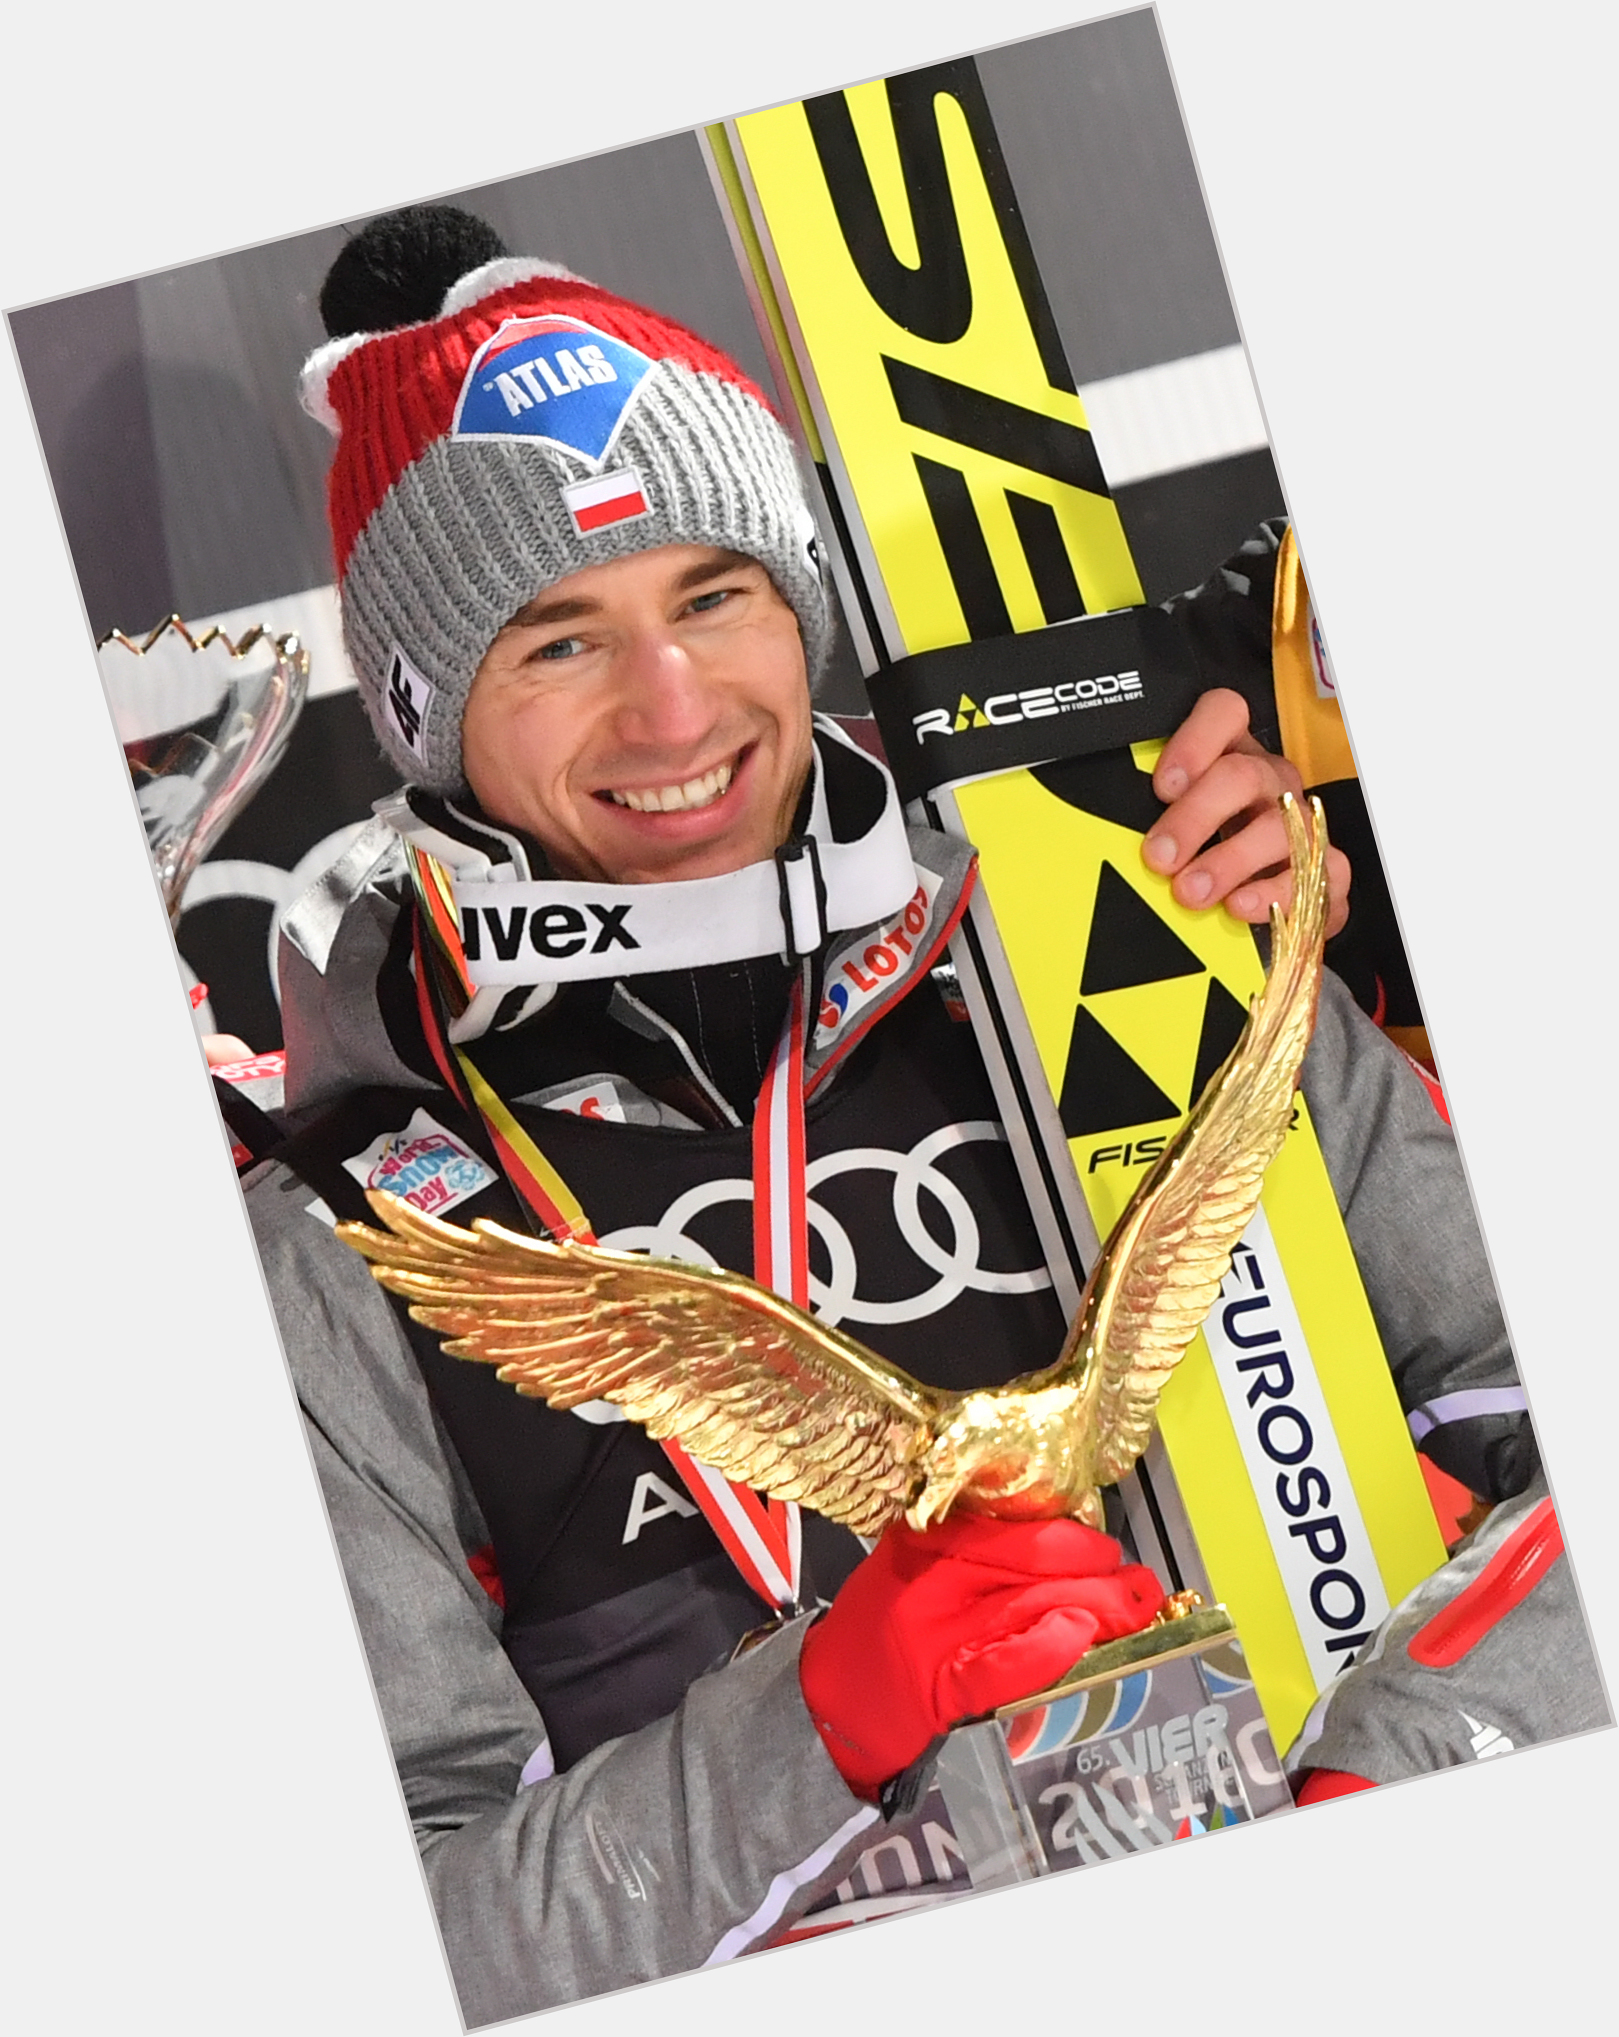 Kamil Stoch picture 1.jpg